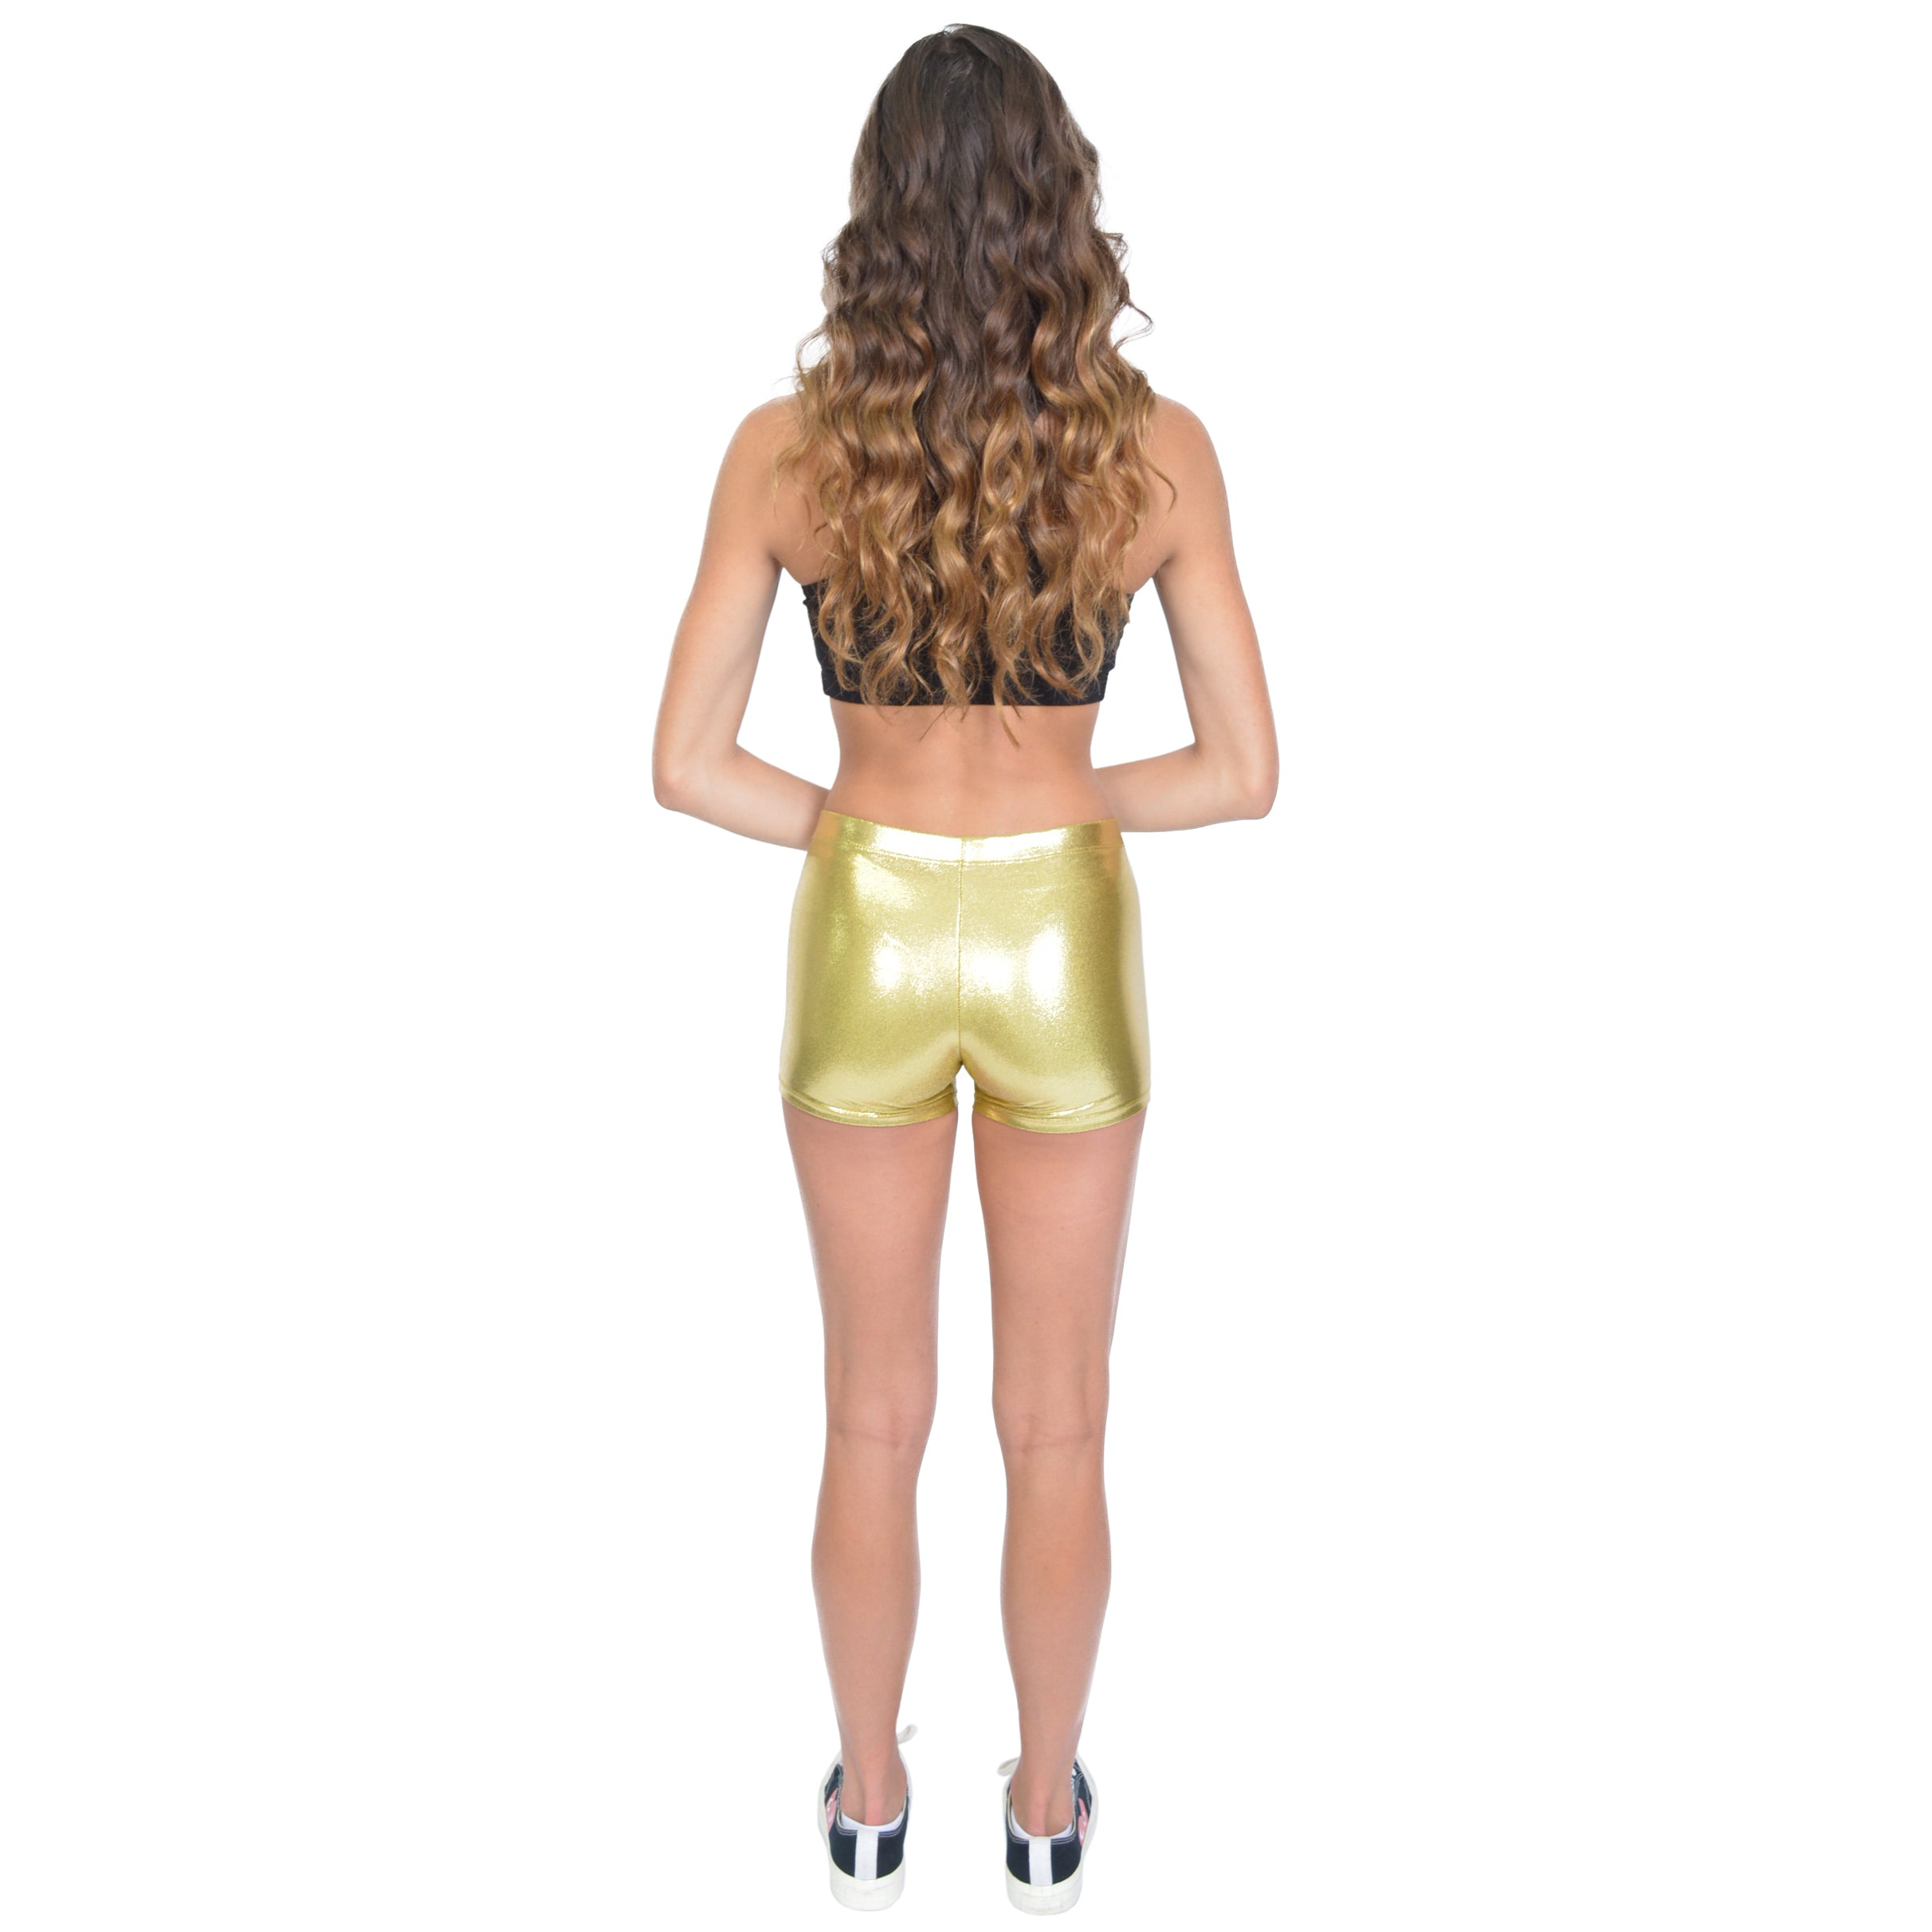 Women's Mystique Booty Shorts